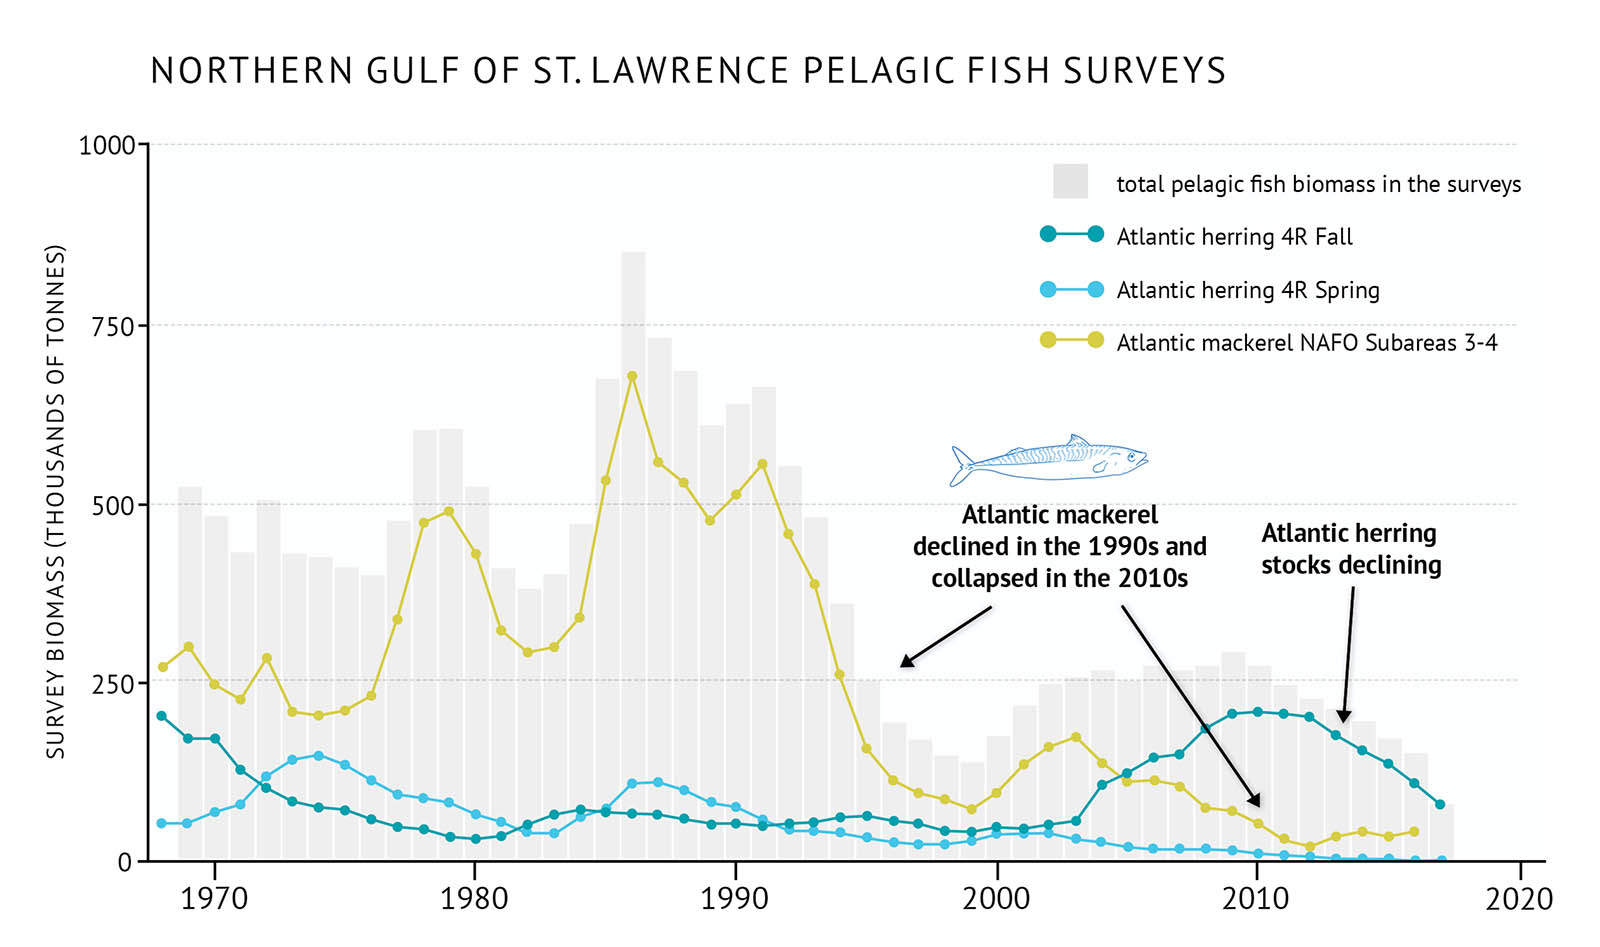 "Figure 23: Survey biomass for total pelagic fish and individual species in the northern Gulf of St. Lawrence. A bar and line graph illustrates the survey biomass for total pelagic fish as well as individual species in the northern Gulf of St. Lawrence. Text above the graph says ""Northern Gulf of St. Lawrence Pelagic Fish Surveys"".The vertical axis on the left shows the survey biomass in units of kilograms per tow from 0 to 1000 in increments of 250. The bottom horizontal axis shows the years between 1970 and 2020 in 10 year increments. The biomass for total pelagic fish in the survey is represented by grey vertical bars. The data extends from 1968 to 2017. The total survey biomass fluctuates between approximately 400 to 500 thousand tonnes in the 1970s and 1980s, with a peak in the early 1980s of near 600 thousand tonnes. It increases rapidly in the mid-1980s with a peak of approximately 850 thousand tonnes and then fluctuating between 600 to 700 thousand tonnes. It decreases through the 1990s to almost 100 thousand tonnes then increases in the early 2000s to approximately 250 thousand tonnes. It decreases again over the 2010s to near 100 thousand tonnes. The survey biomass of individual pelagic species is represented by coloured lines on the same graph. A legend appears on the right. A dark blue data line shows the survey biomass of Atlantic herring for fall in the 4R NAFO zone. A light blue data line shows the survey biomass of Atlantic herring for spring in the 4R NAFO zone. A yellow data line shows the survey biomass of Atlantic mackerel in NAFO Subareas 3 and 4. The survey biomass of Atlantic mackerel is higher than the other species on the graph and is similar to the overall trend for total survey biomass of pelagic fish. In the early 1970s it fluctuates around 250 thousand tonnes, increasing in the late 1970s to a peak near 500 thousand tonnes. It then increases again in the late-1980s peaking below 700 thousand tonnes. It decreases in the 1990s below 100 thousand tonnes. There is a modest increase in the early 2000s but then it decreases until the 2010s where it remains at a low level. The survey biomass of Atlantic herring in 4R for spring and fall surveys both remain below the Atlantic mackerel biomass until the mid-2000s. The 4R fall Atlantic herring biomass is near 250 thousand tonnes in the late 1960s, but decreases and remains low until the mid-2000s when it increases again to near 250 thousand tonnes. In the 2010s it begins to decrease again. The 4R spring Atlantic herring biomass has a slight increase in the mid-1970s, but is generally low throughout the time period of the graph and decreases in the 2000s and 2010s. A small, light blue outline drawing of an Atlantic mackerel is placed above the vertical bars to the right-hand side of the graph. Below the drawing there is text which states ""Atlantic mackerel declined in the 1990s and collapsed in the 2010s"". An arrow points down to the 1990s period and another to the 2010 period. Another line of text farther on the right-hand side of the graph says ""Atlantic herring stocks declining"". An arrow points from the text to the 2010s period."